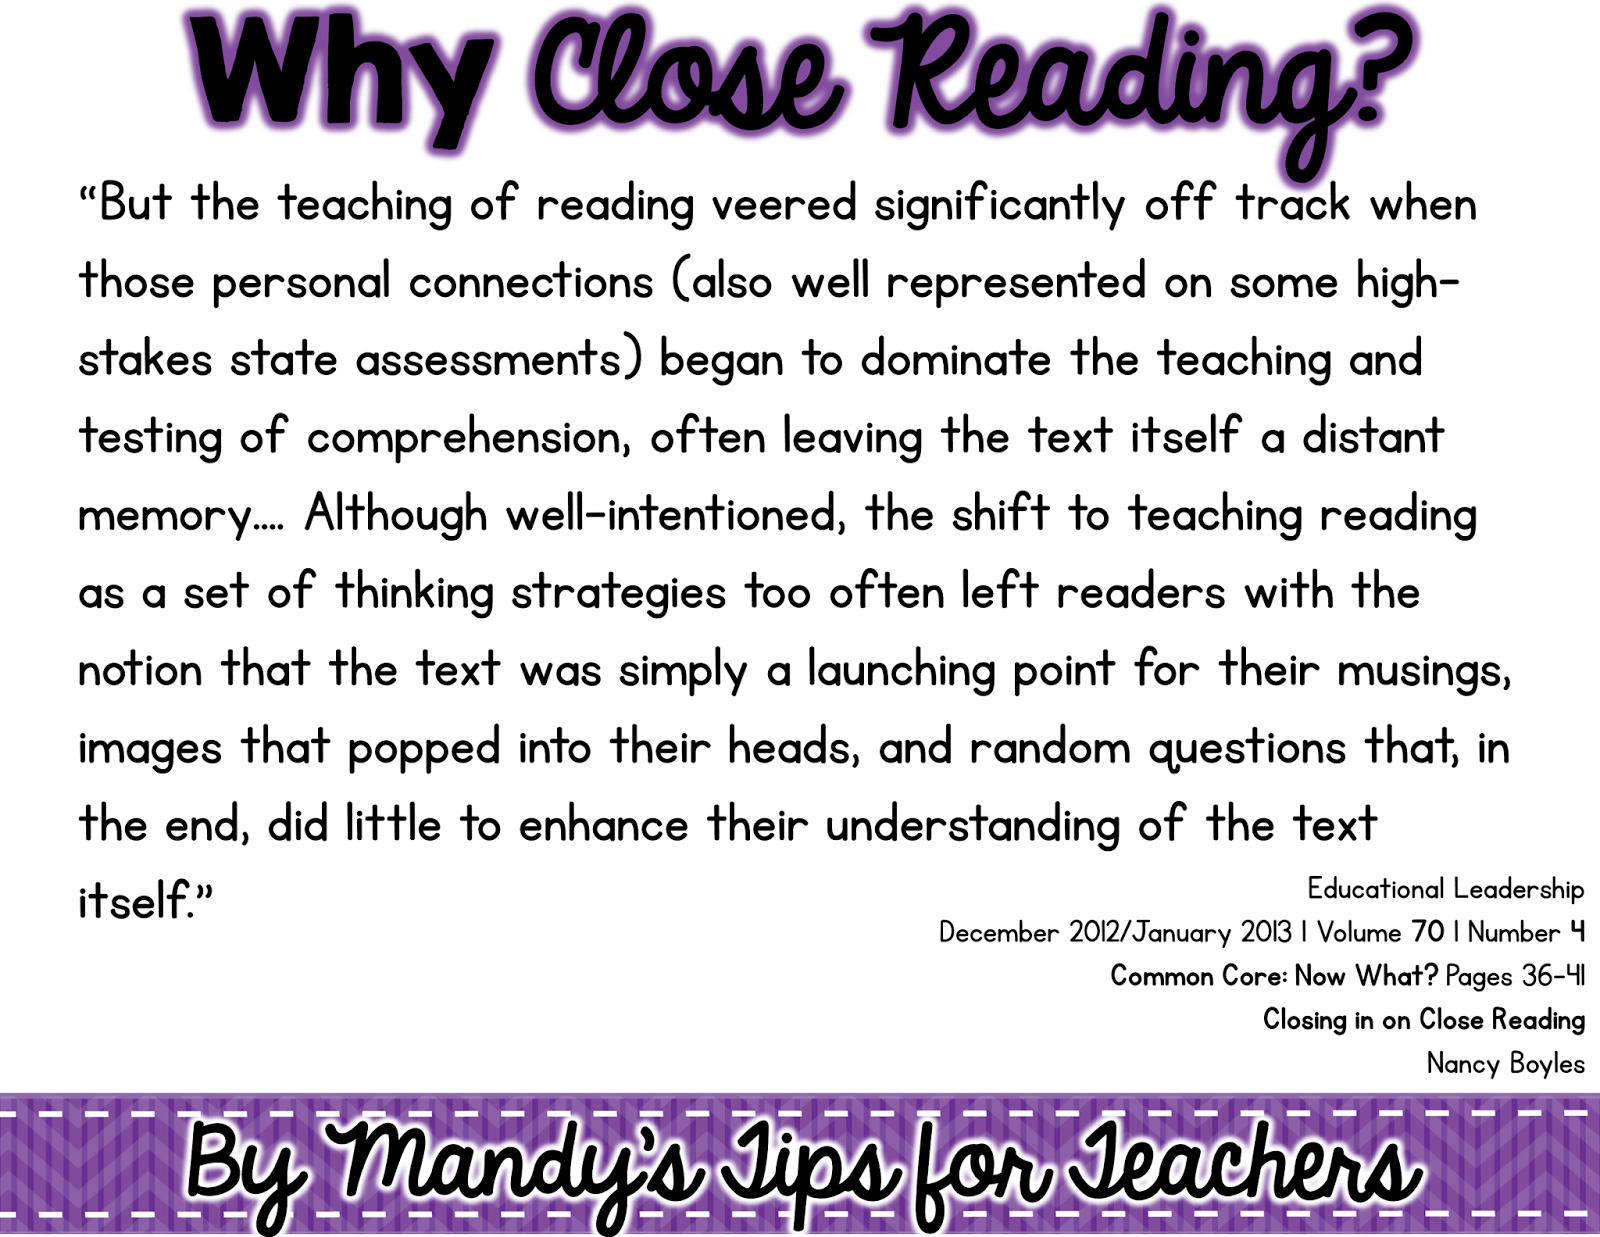 research articles for in close proximity reading